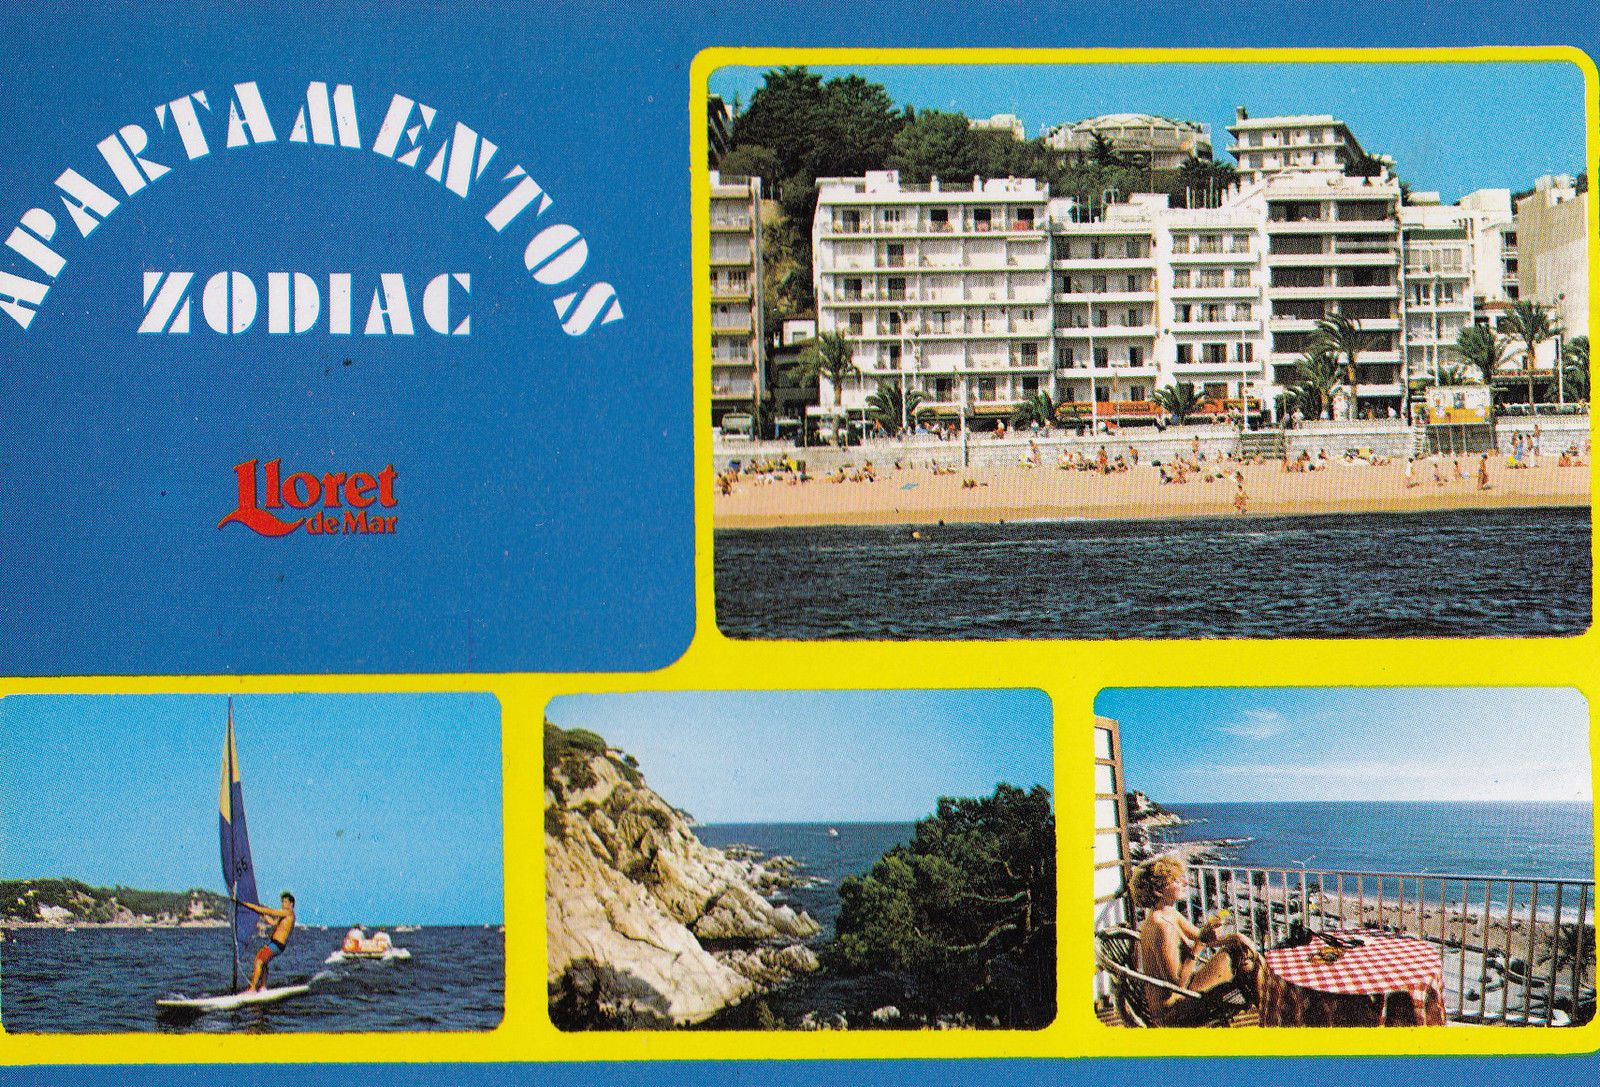 Zodiac Apartmentos Lloret De Mar Sailing Boats Spanish Postcard